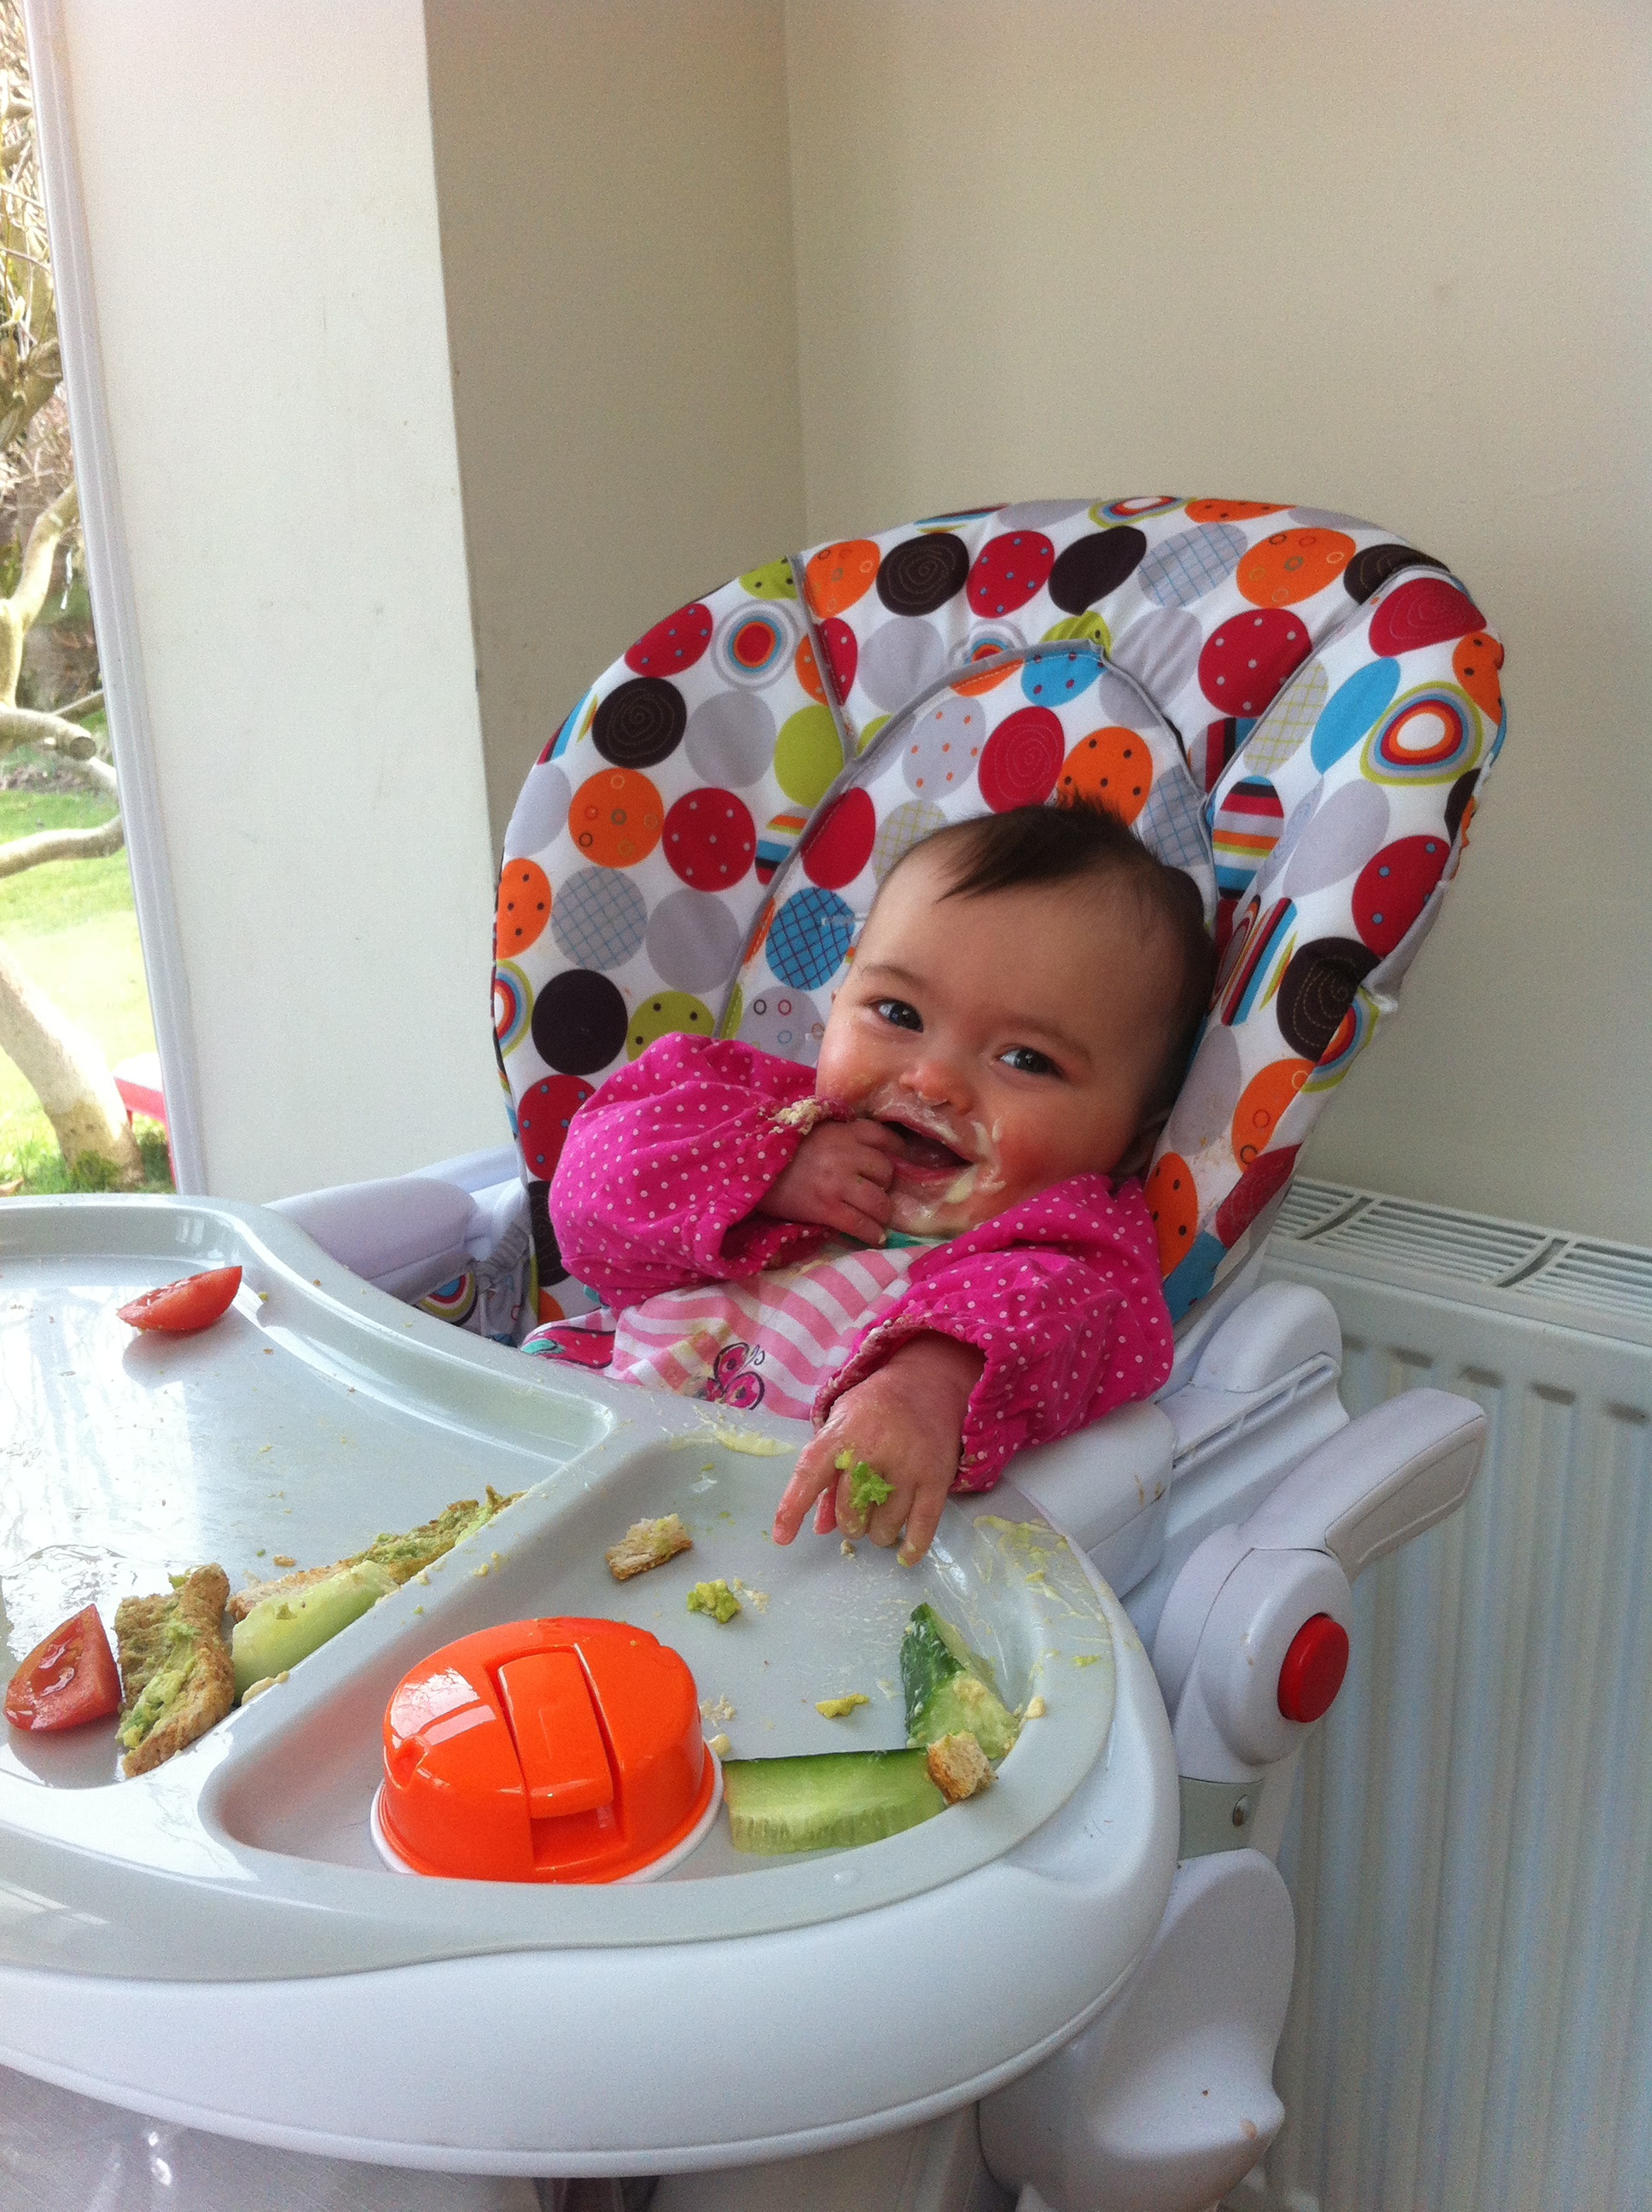 weaning - a bit of both